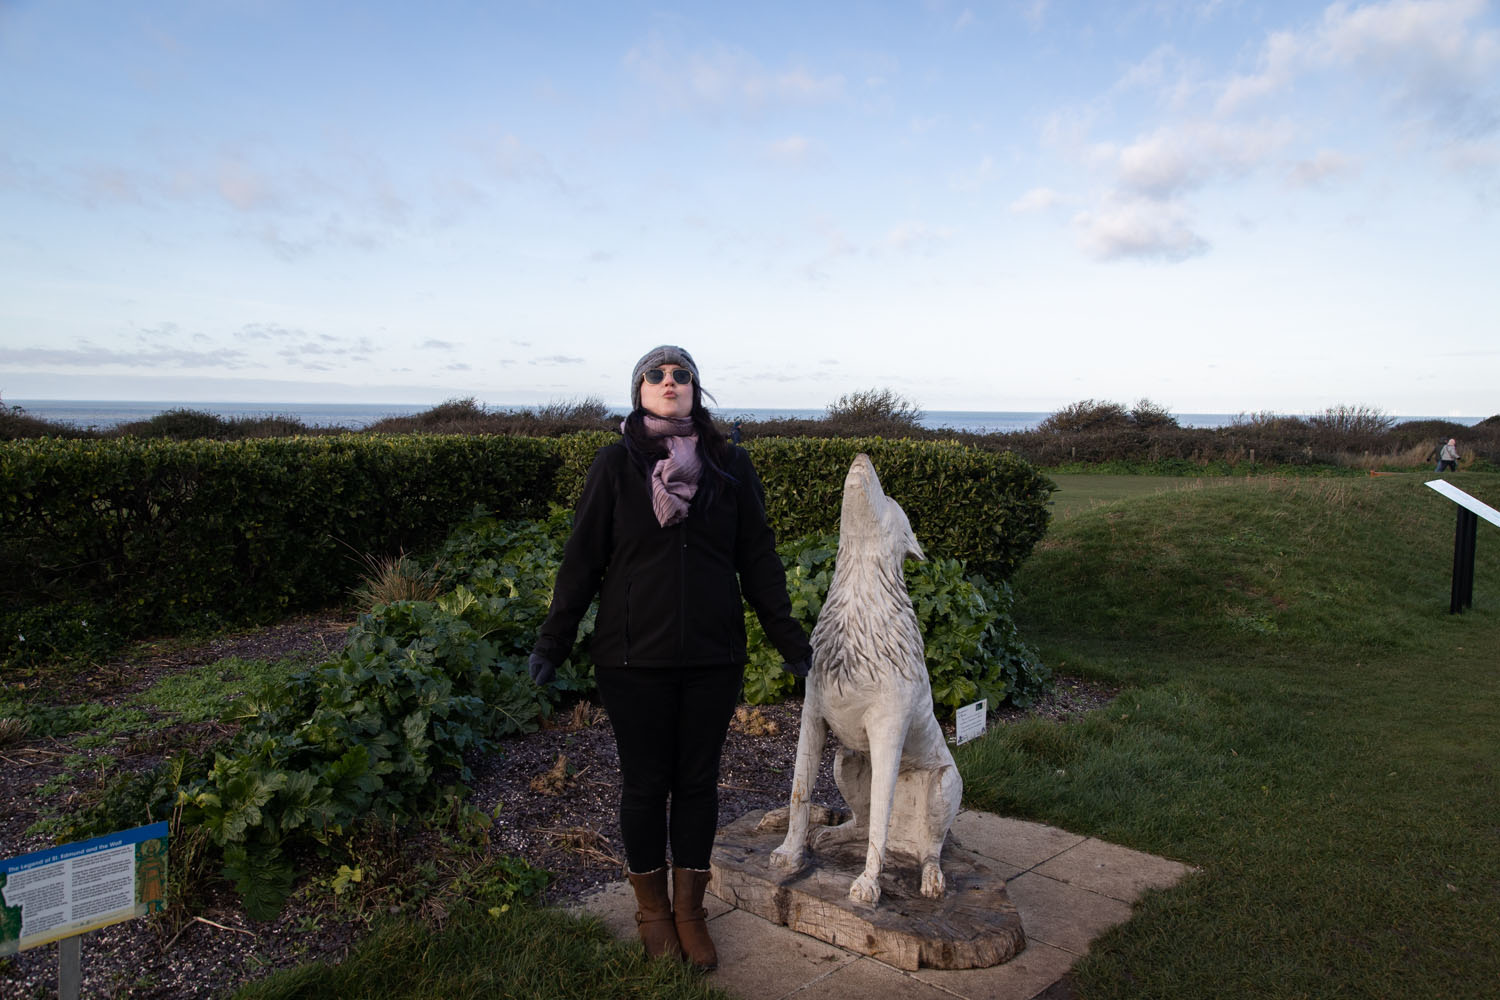 Woman howling next to statue of howling wolf